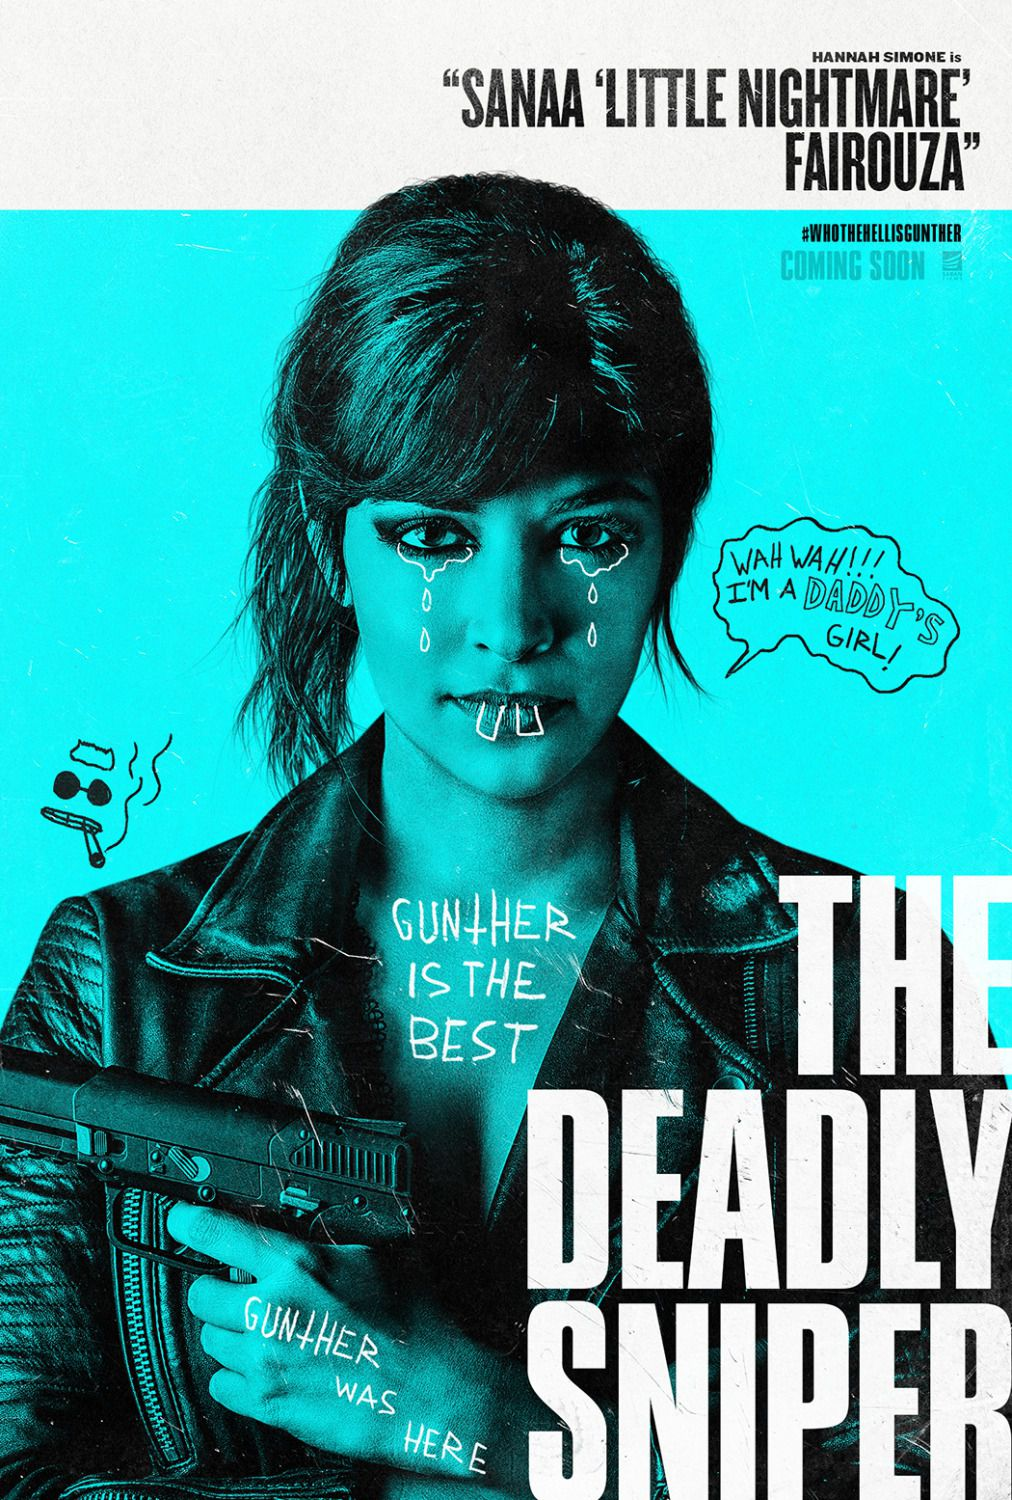 Hannah Simone - Sanaa little nightmare fairouza - Deadly Sniper